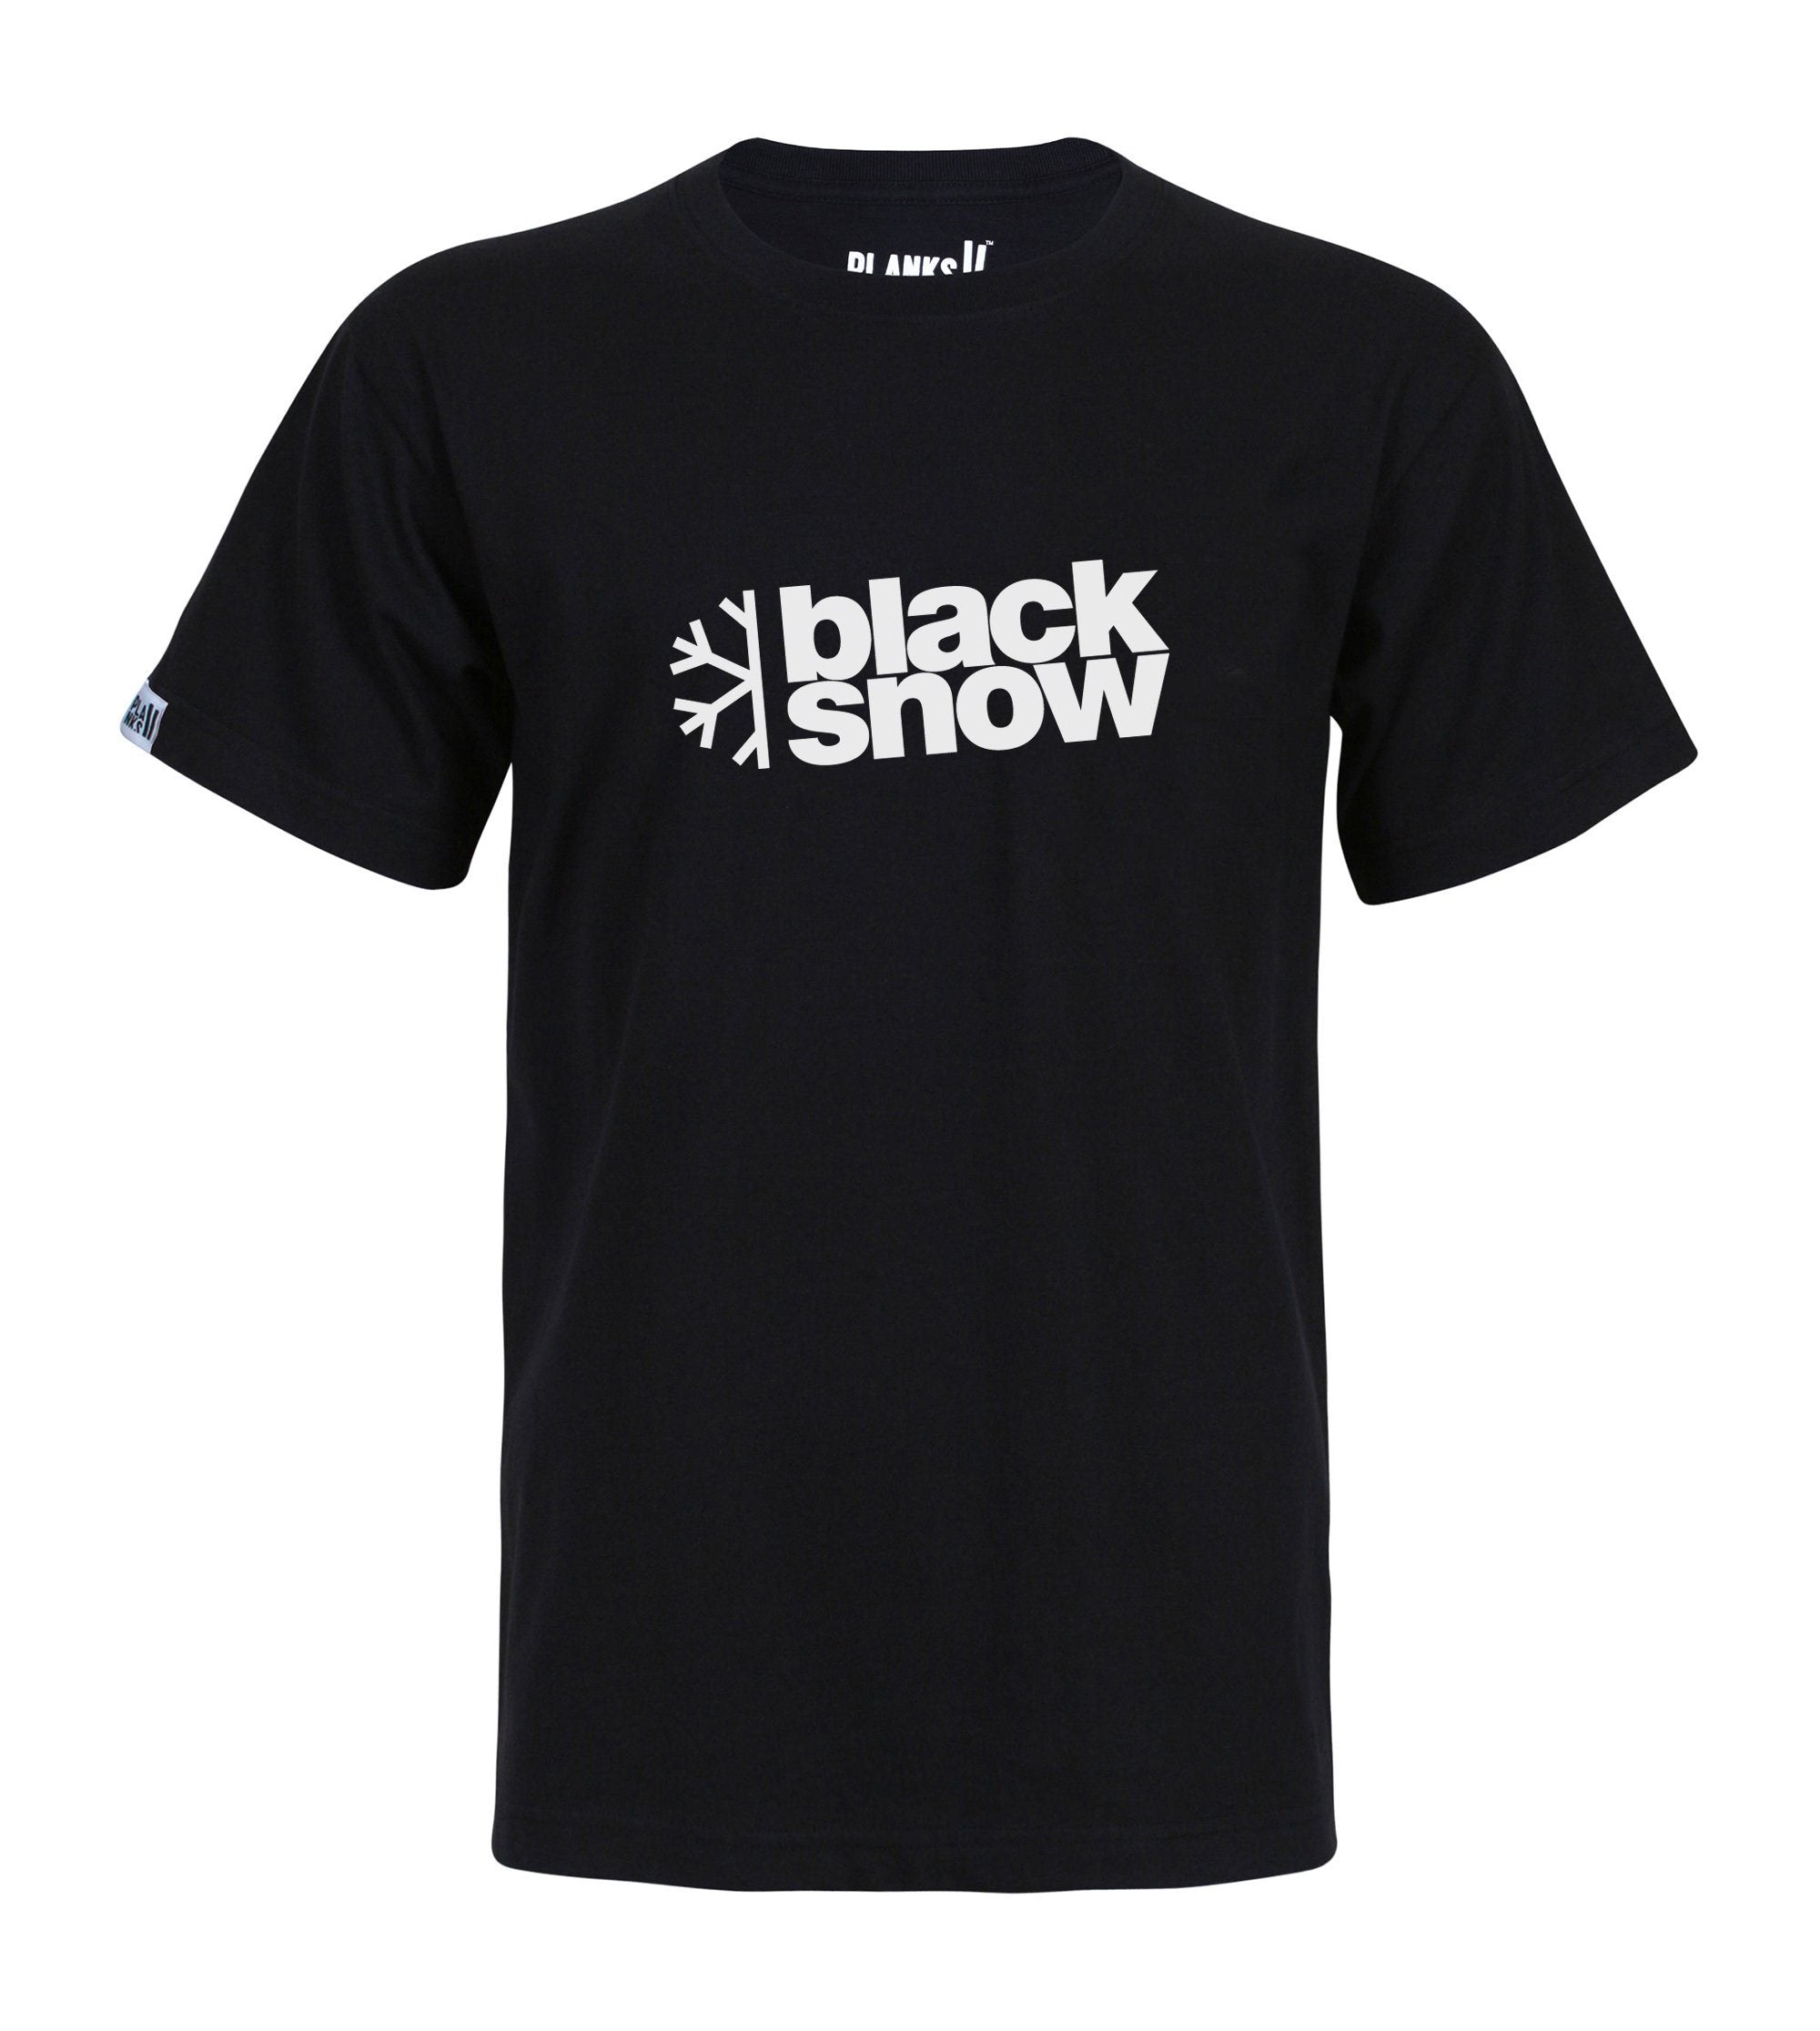 Blacksnow x Planks Collab T-Shirt thumbnail